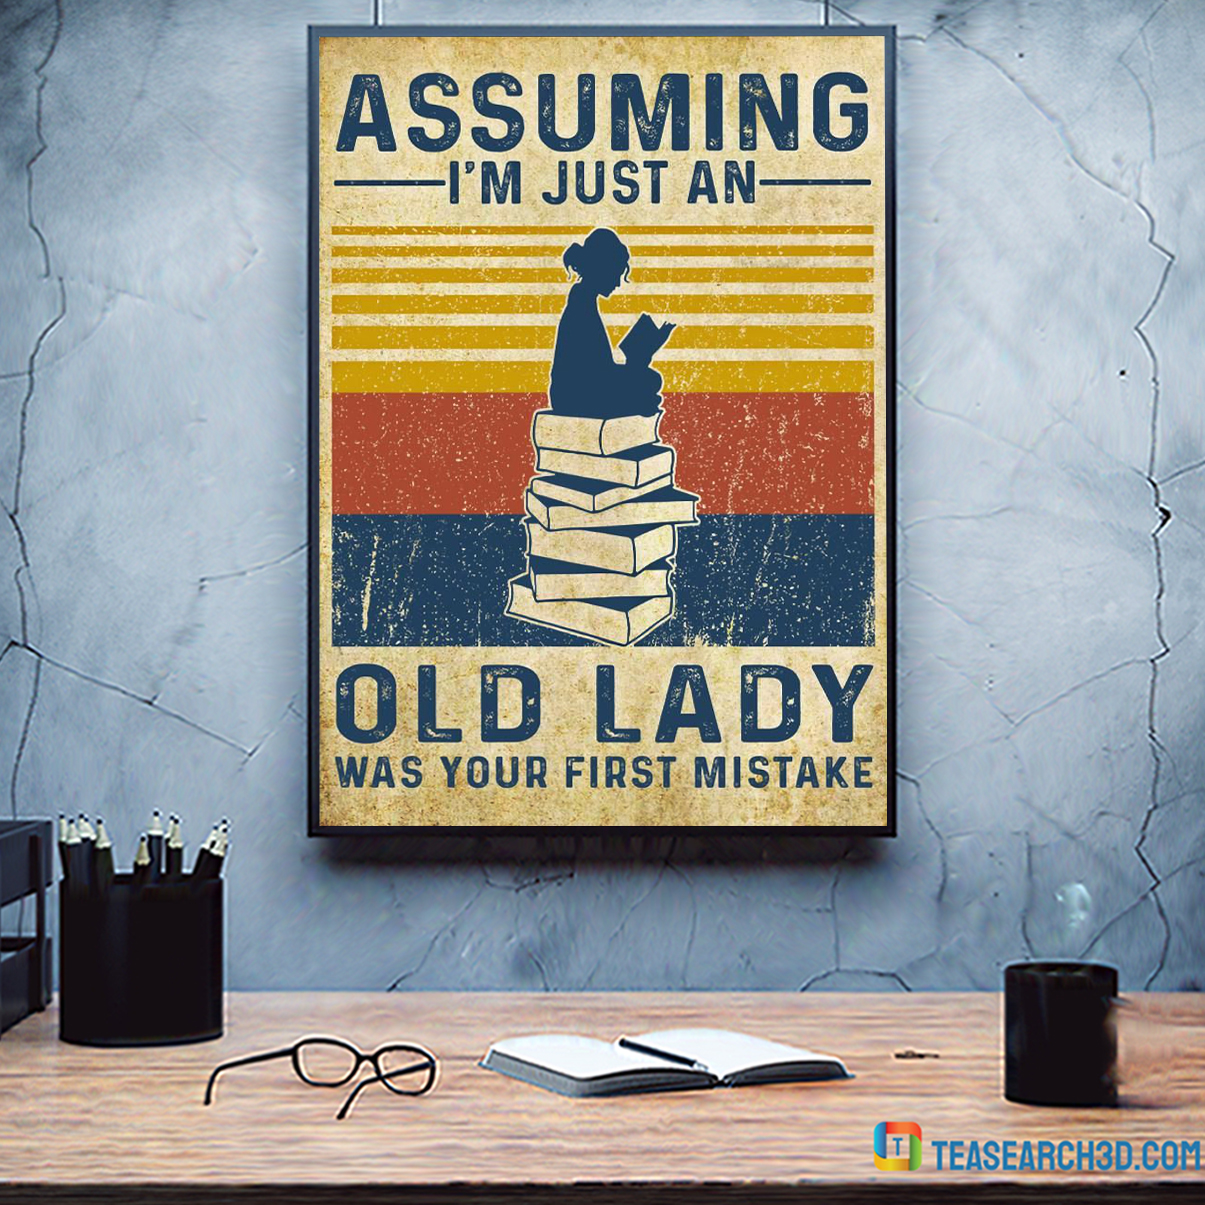 Girl reading assuming I'm just an old lady was your first mistake poster